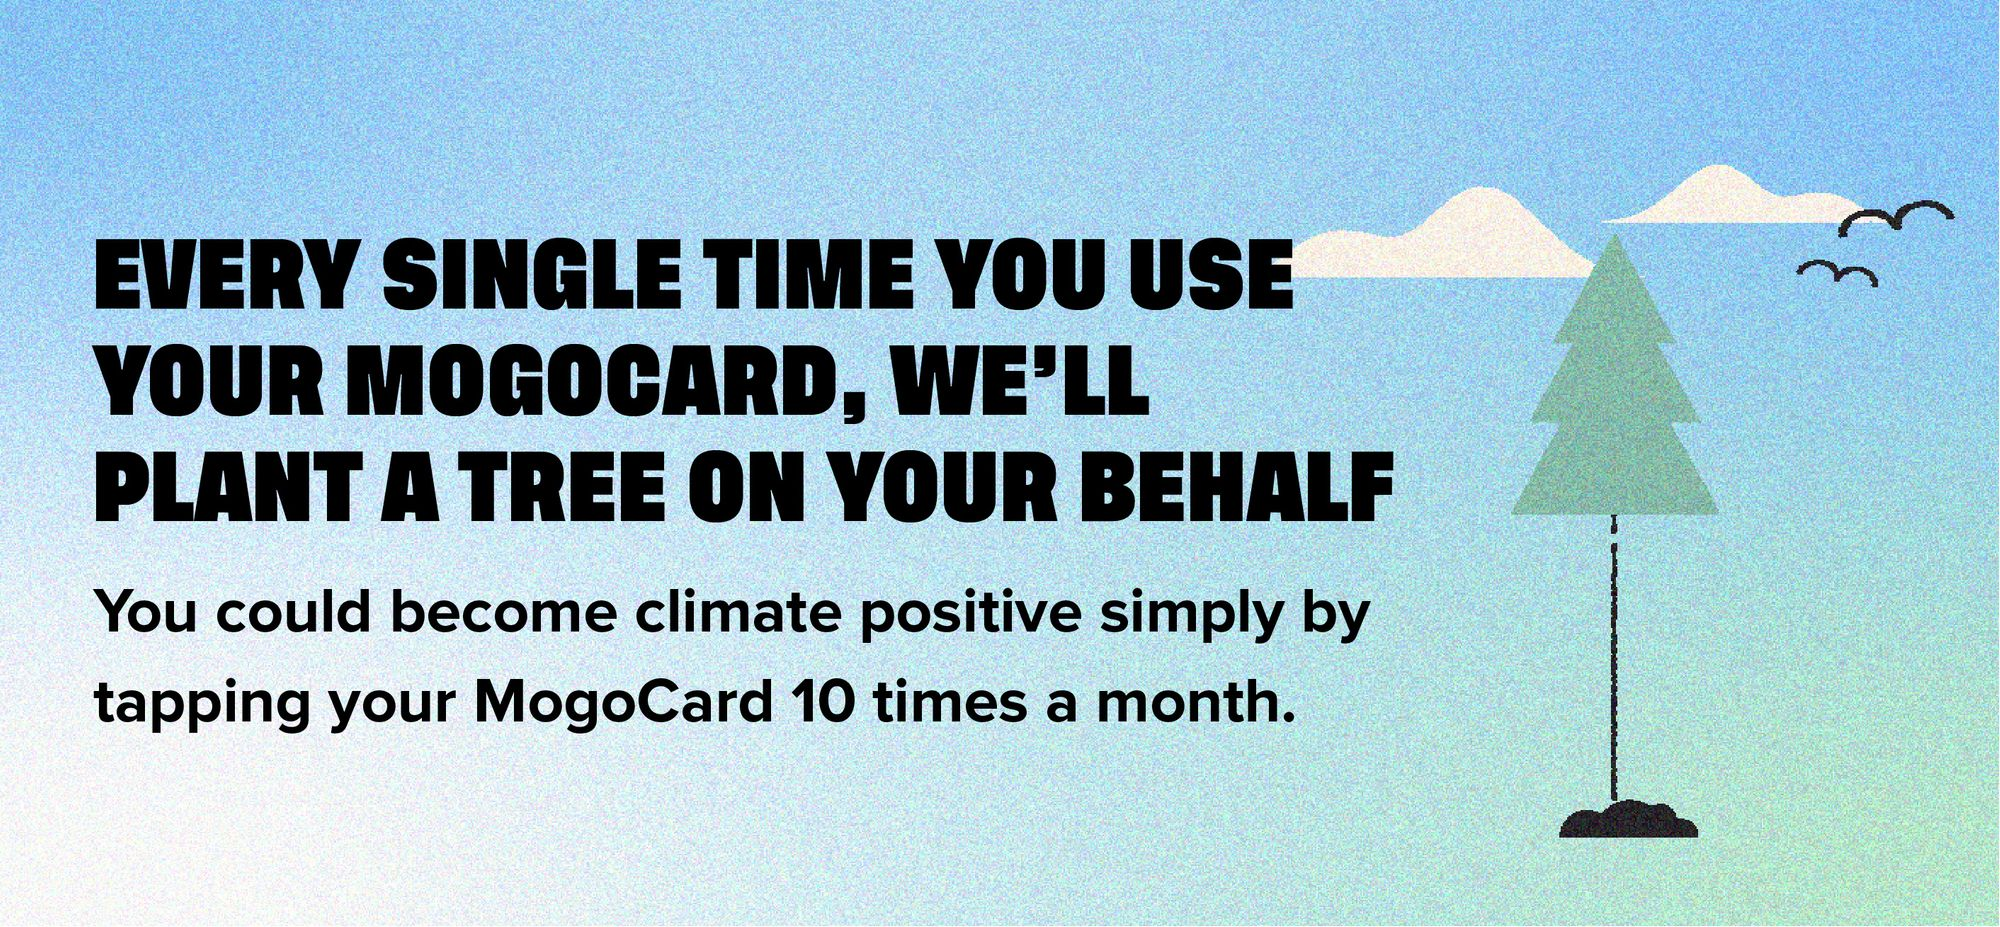 Every single time you use your MogoCard, we'll plant a tree on your behalf. You could become climate positive simply by tapping your MogoCard 10 times a month.